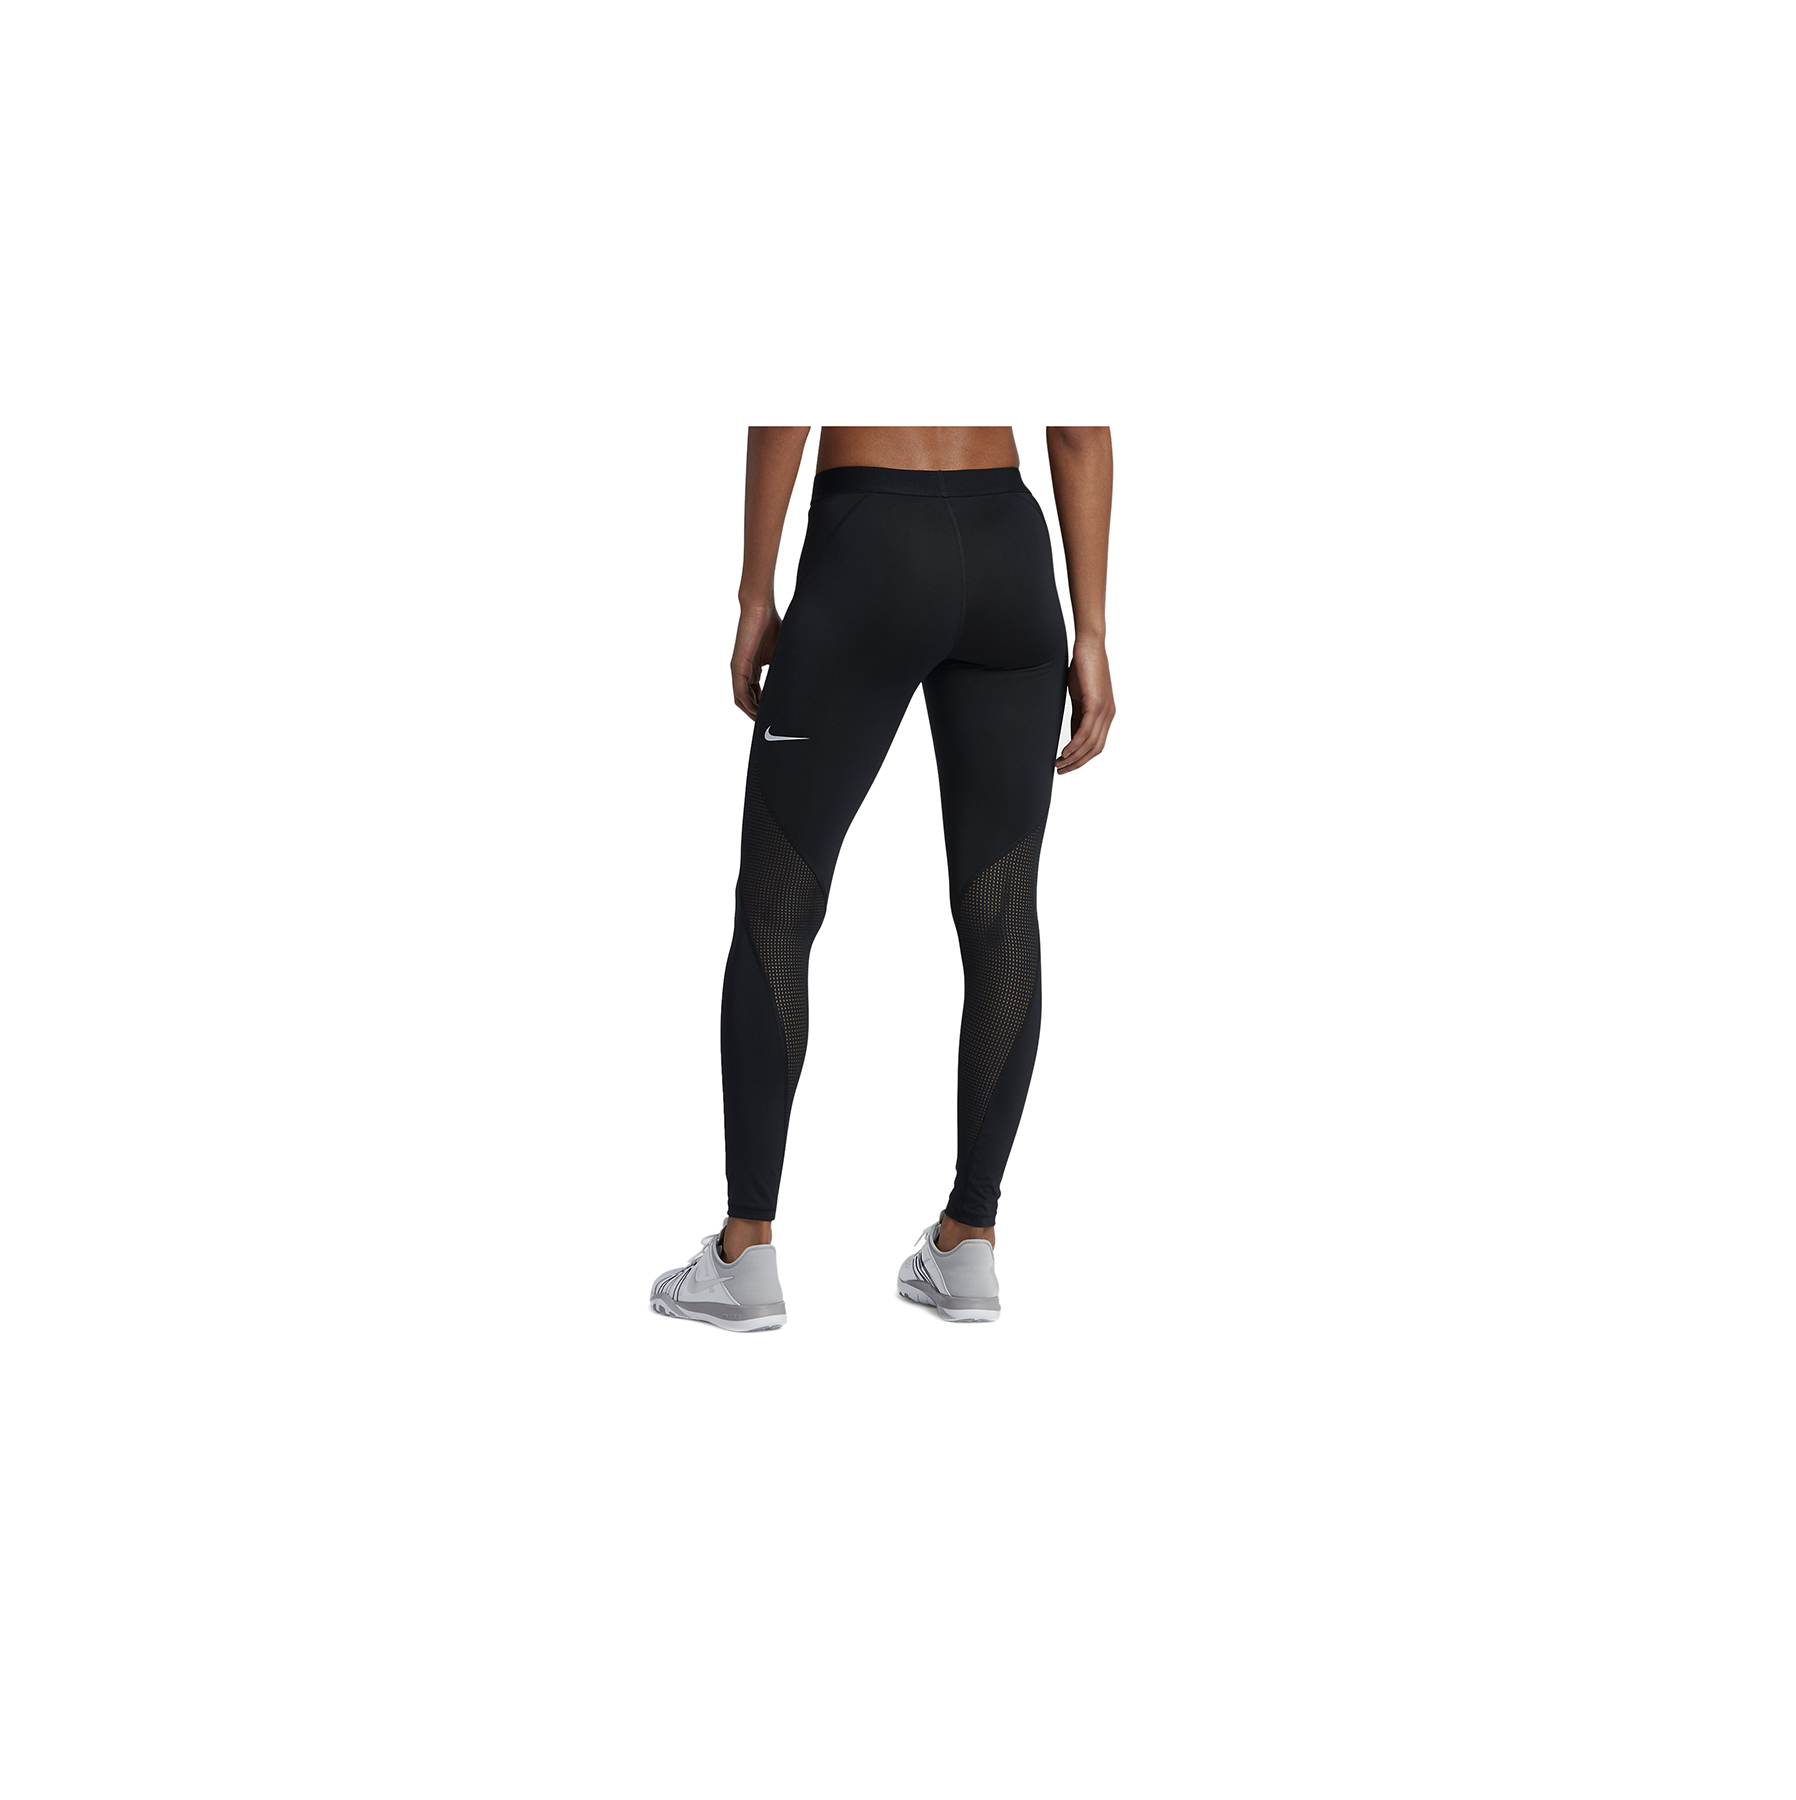 8cfc44da0299c6 7 Black Leggings That Are Perfect for Traveling   Real Simple